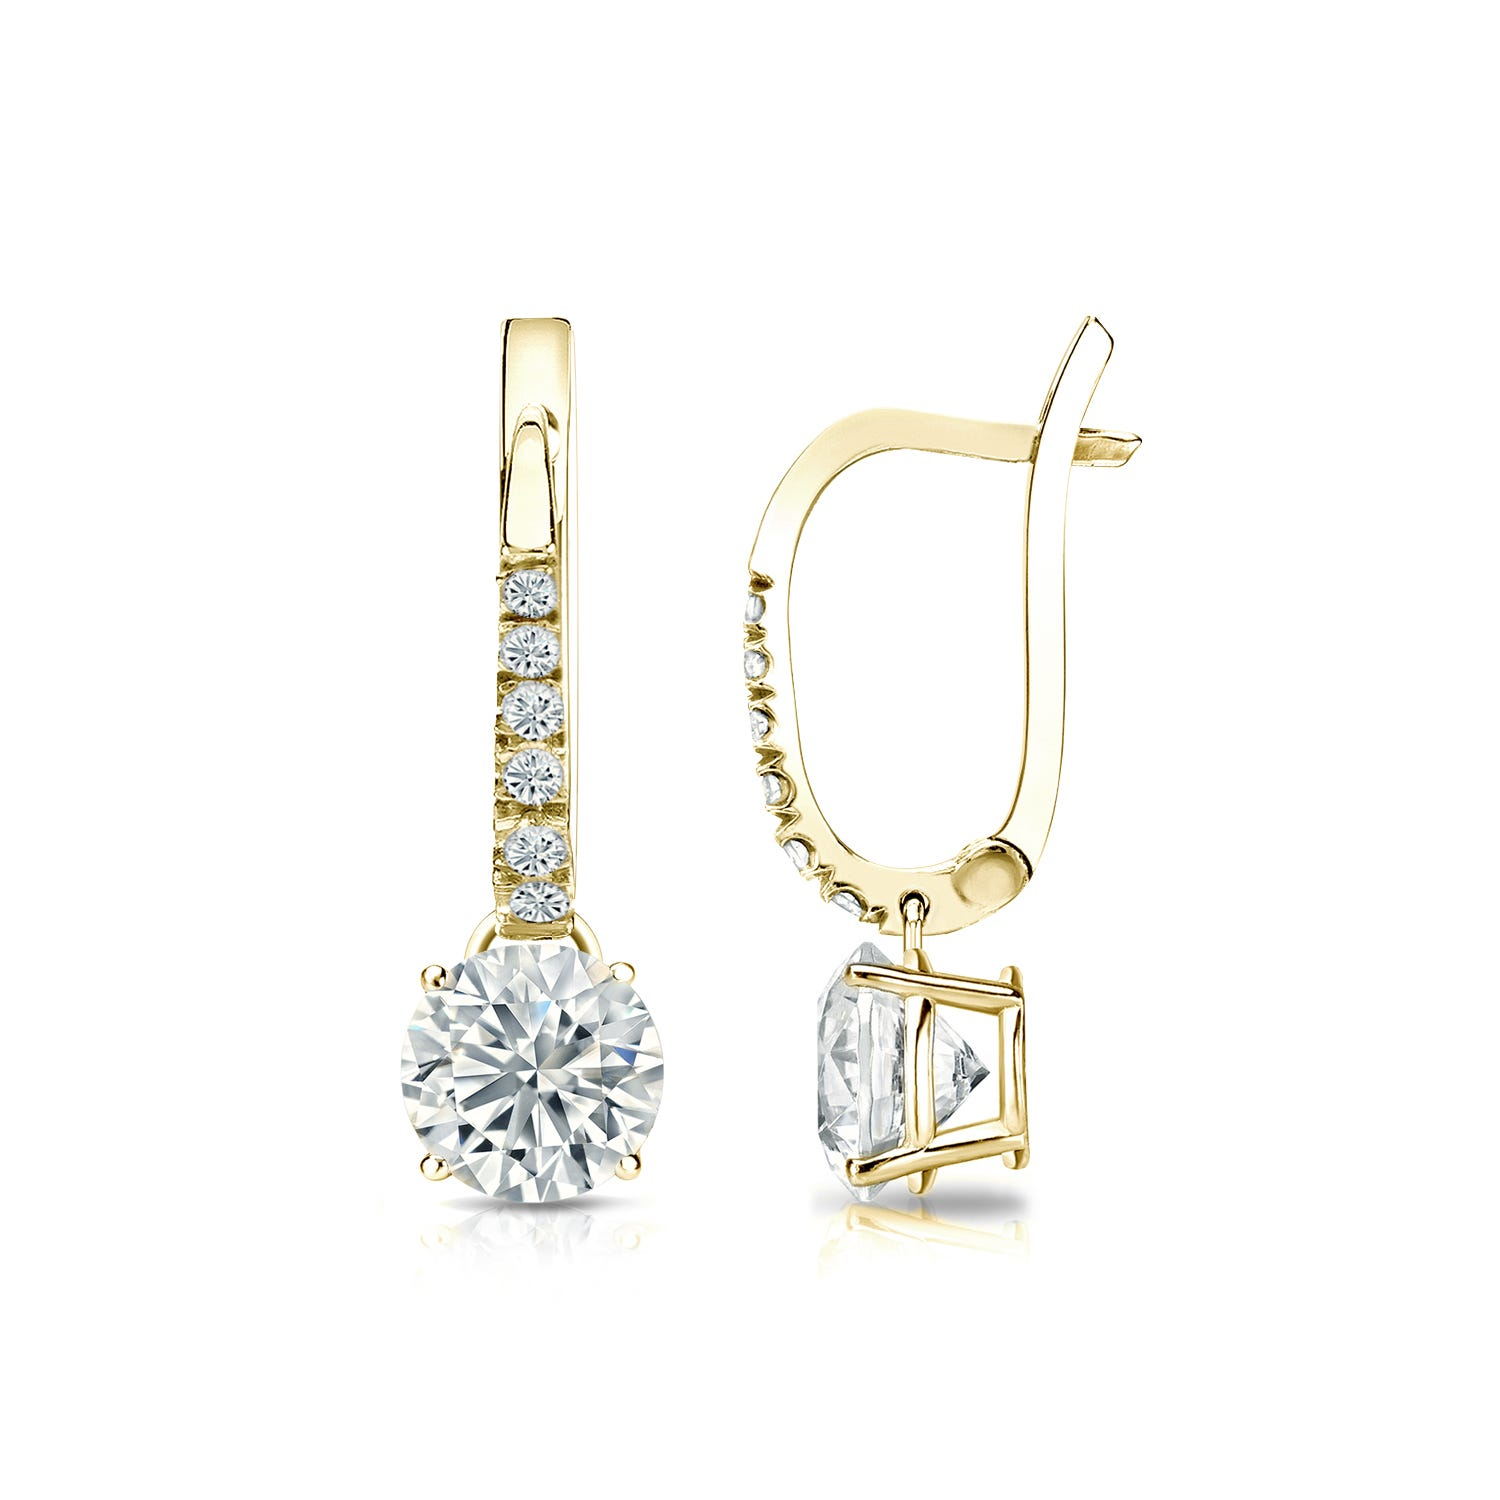 Diamond 1ctw. 4-Prong Round Drop Earrings in 18k Yellow Gold VS2 Clarity